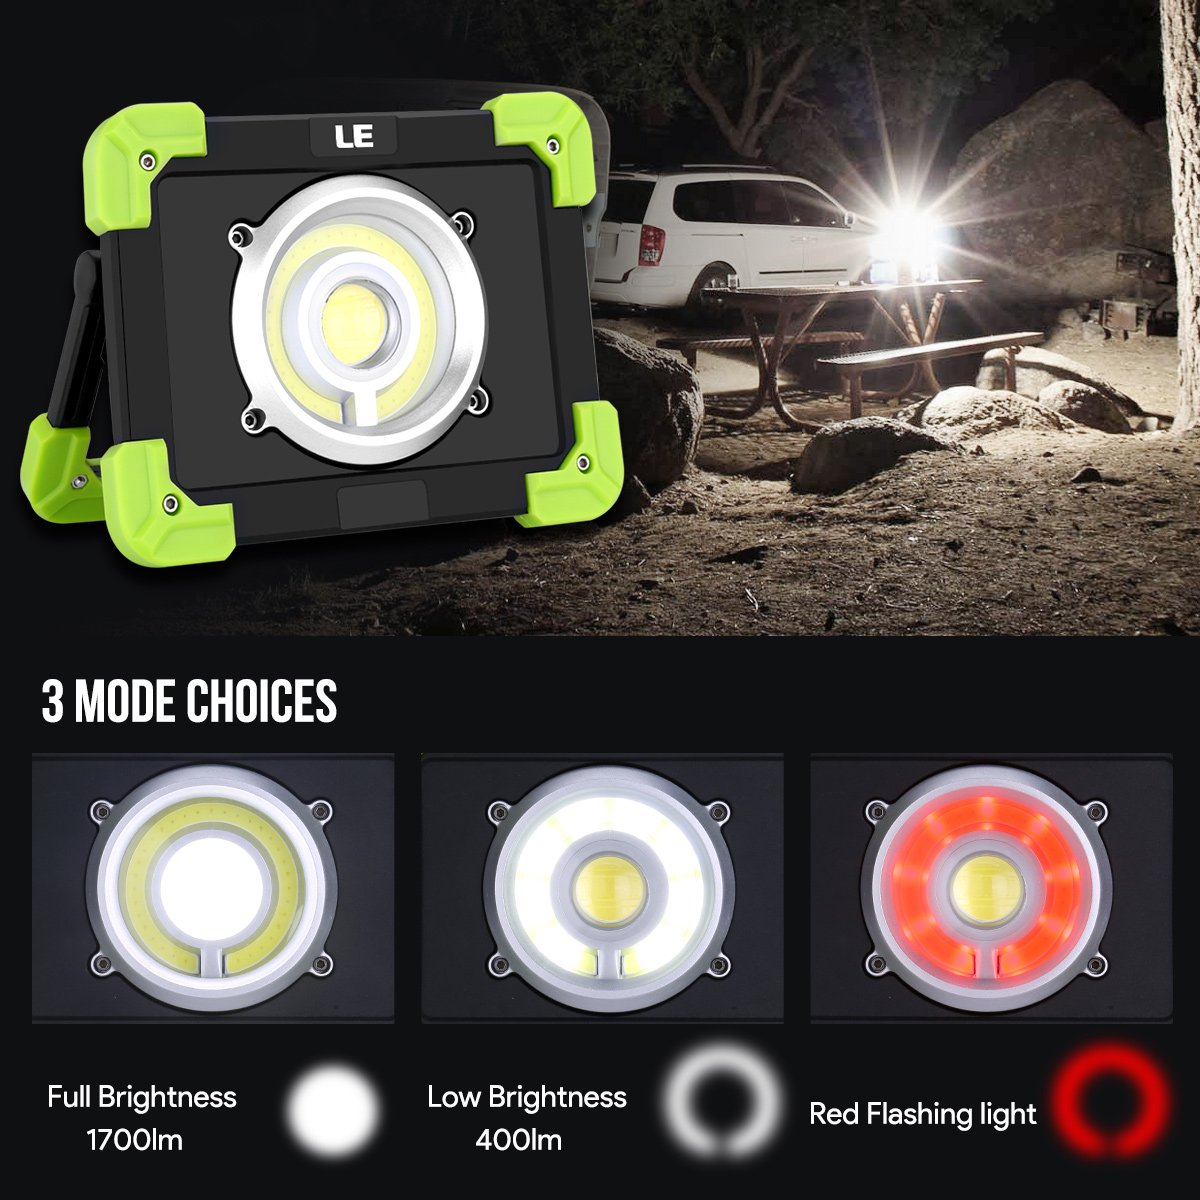 LE 20W LED Work Light Rechargeable Camping Lantern IP44 Waterproof 6000mAh Power Bank Portable Outdoor Walking Hiking Emergency Lamp Daylight White Red Flash by Lighting EVER (Image #4)